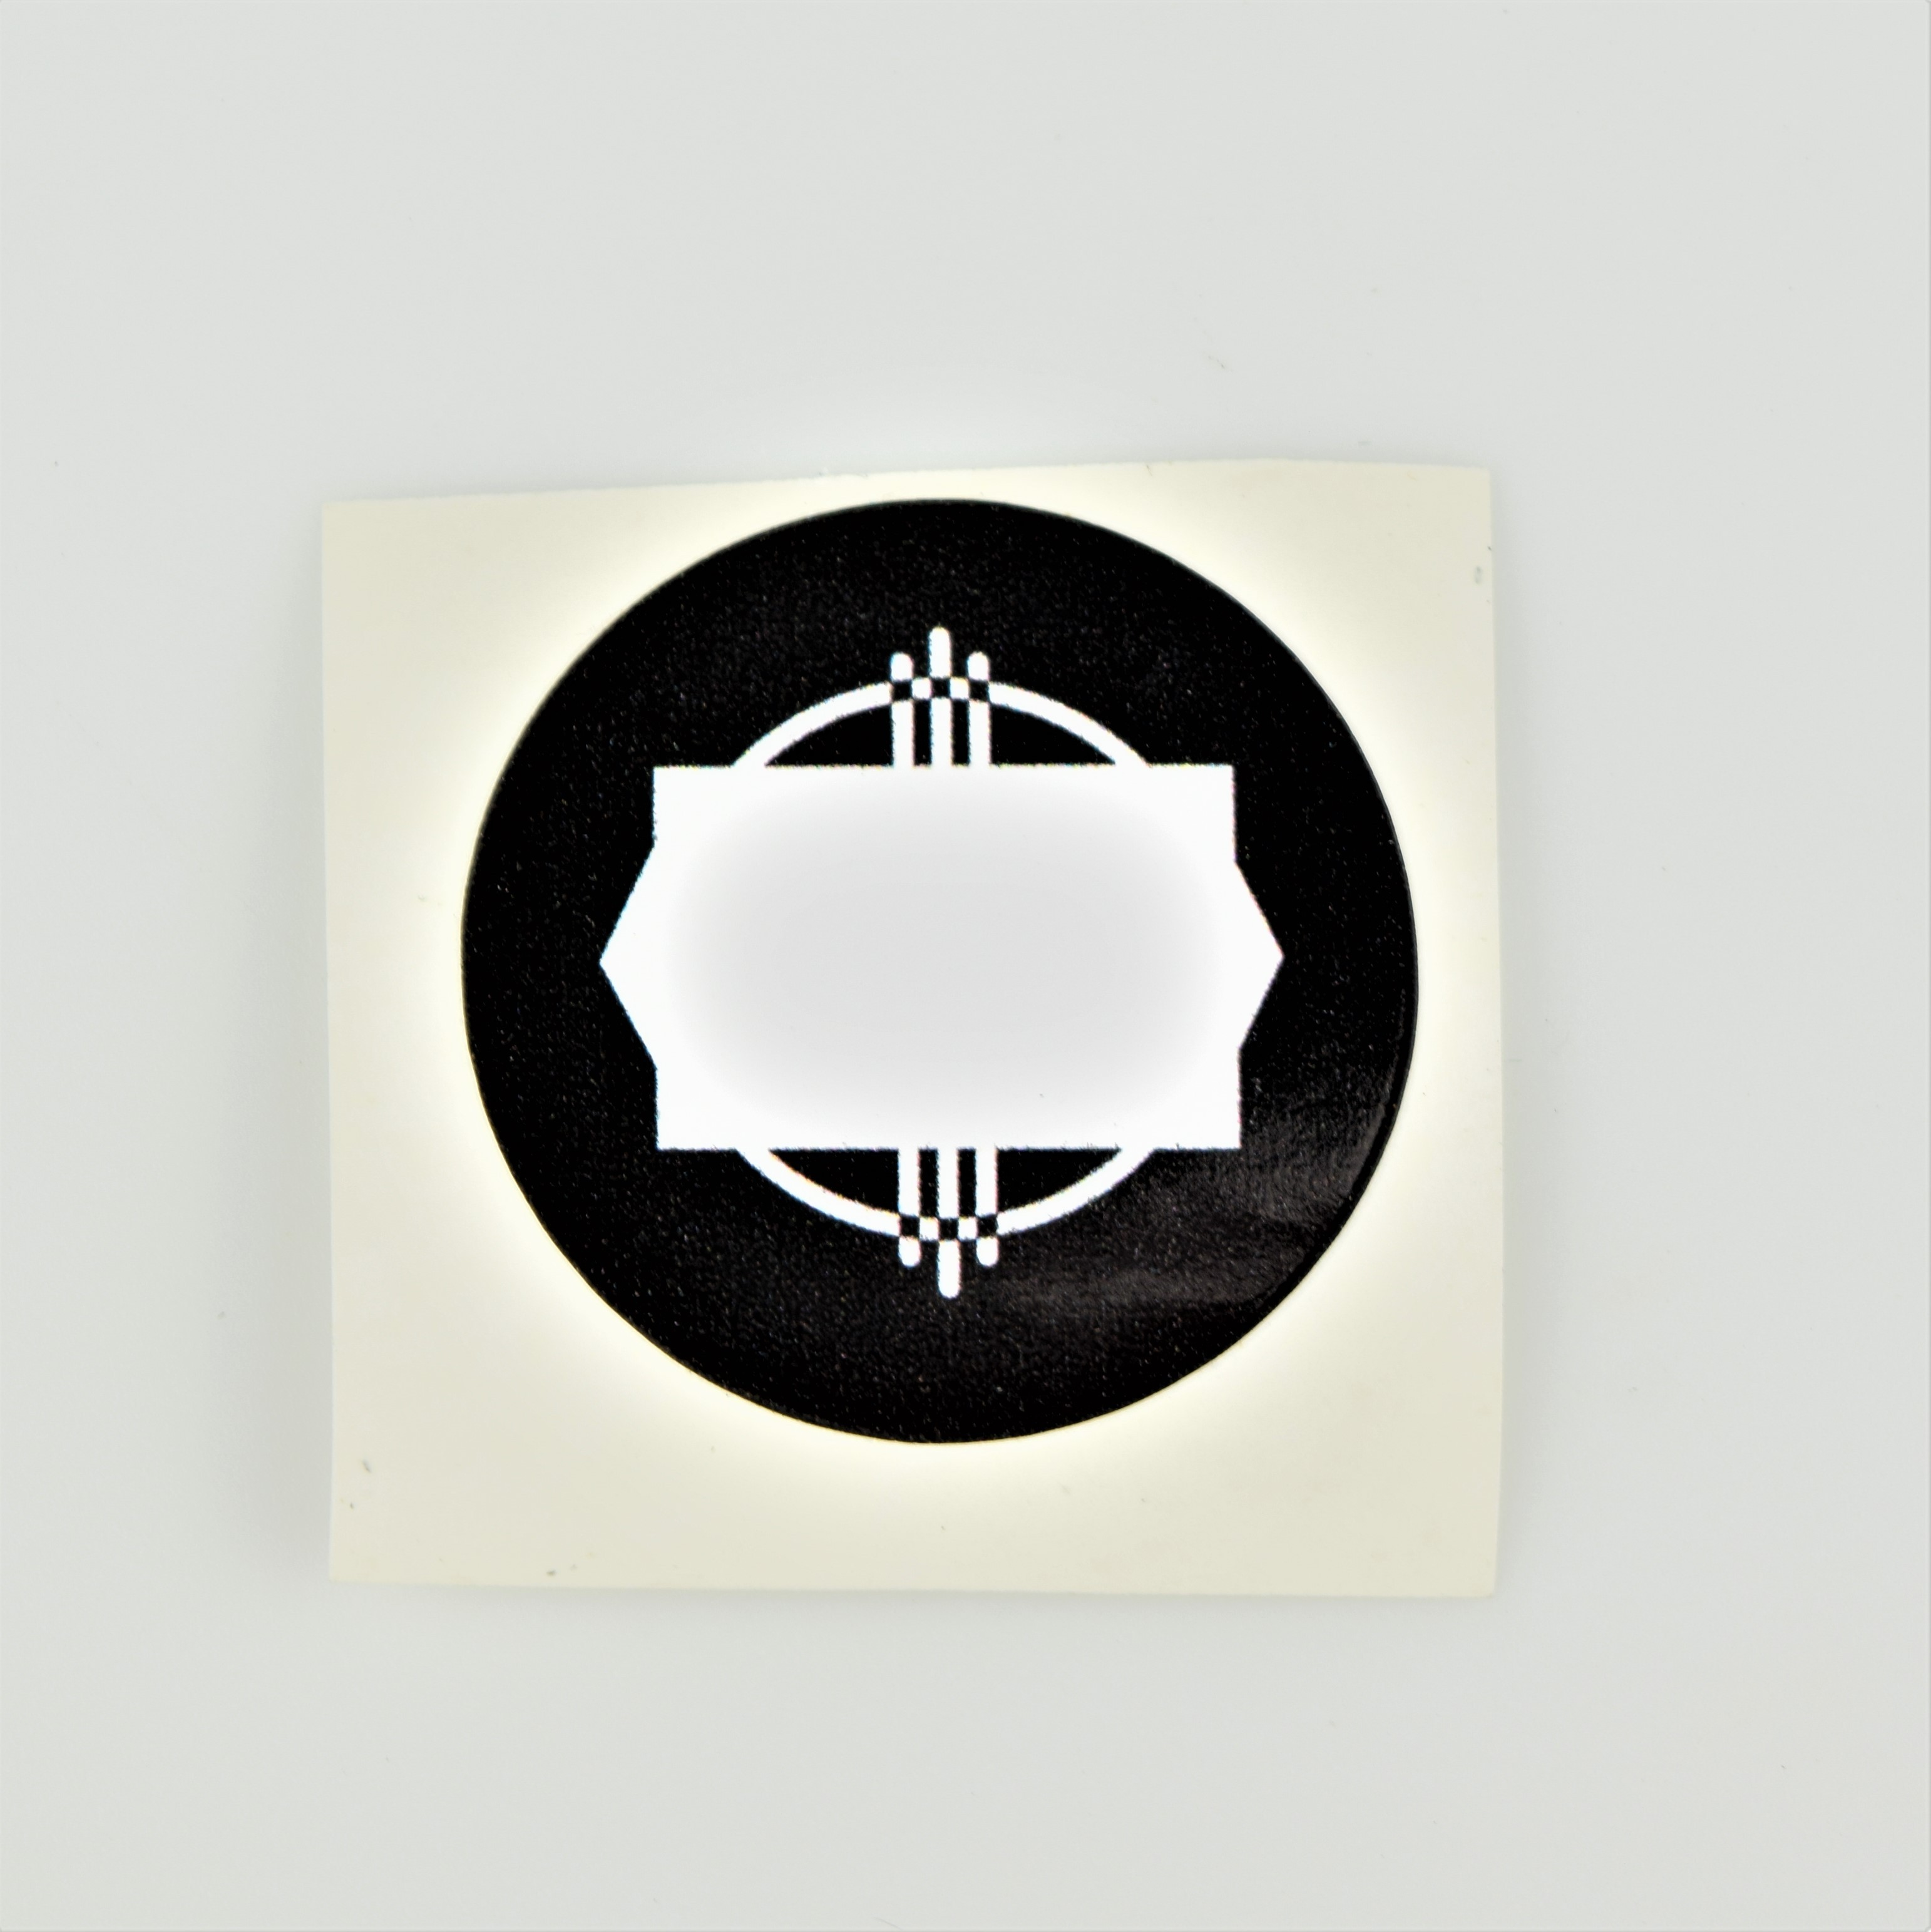 Automatic Electric Dial Center Decal